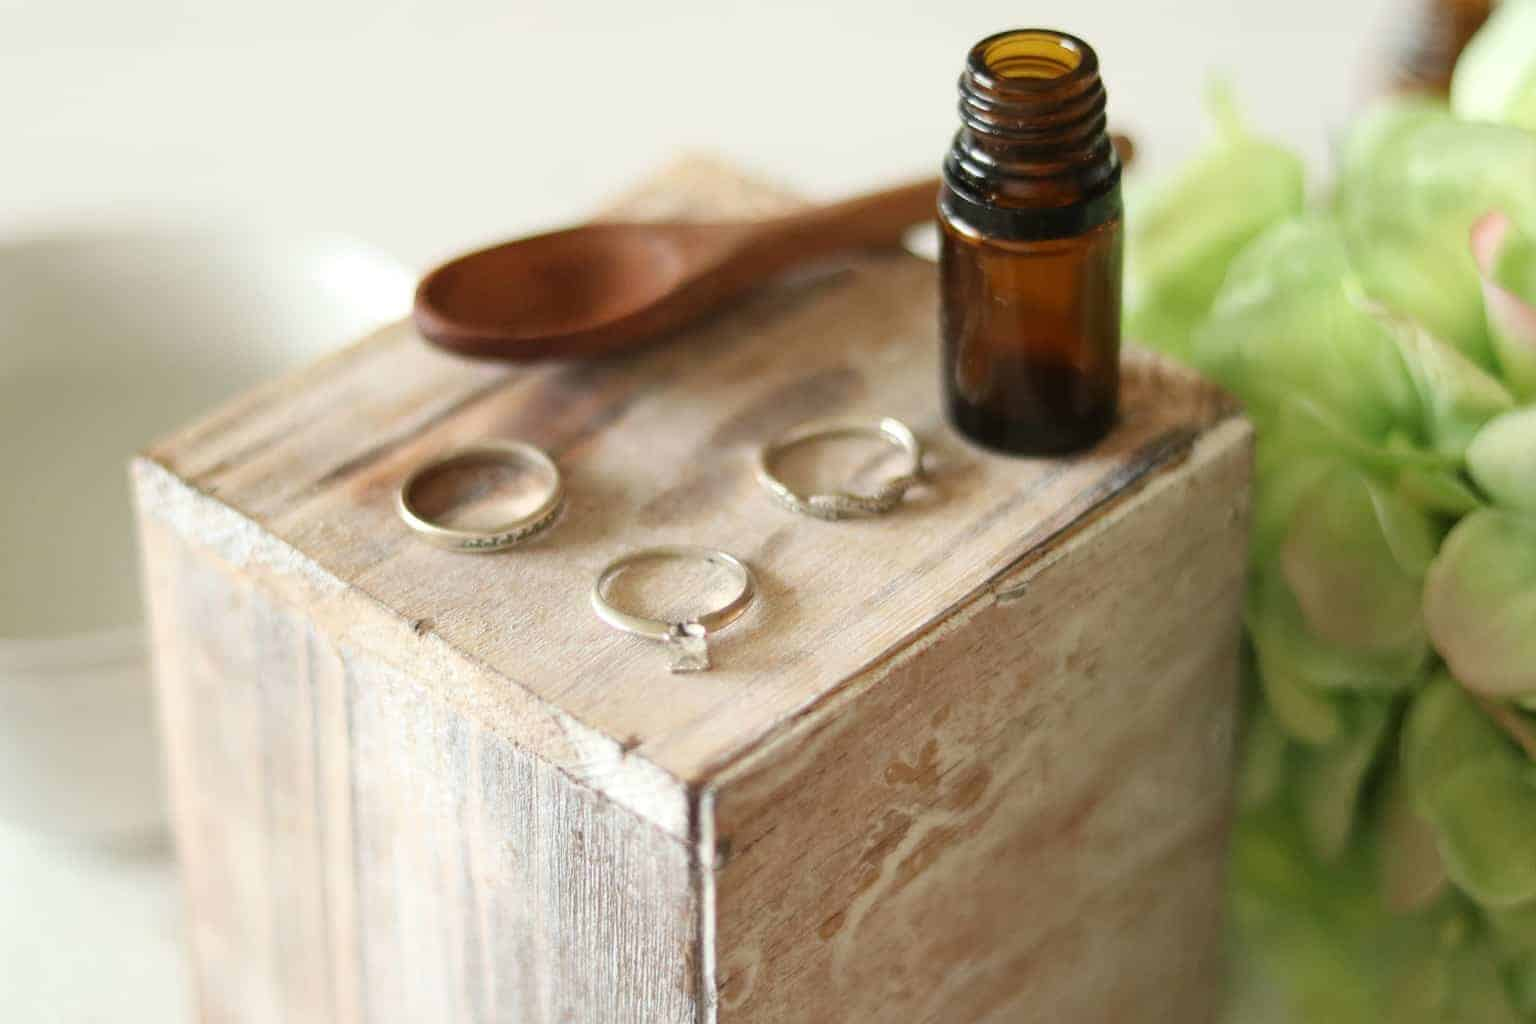 homemade jewelry cleaner in glass bottle with white gold rings, wooden spoon on wooden box